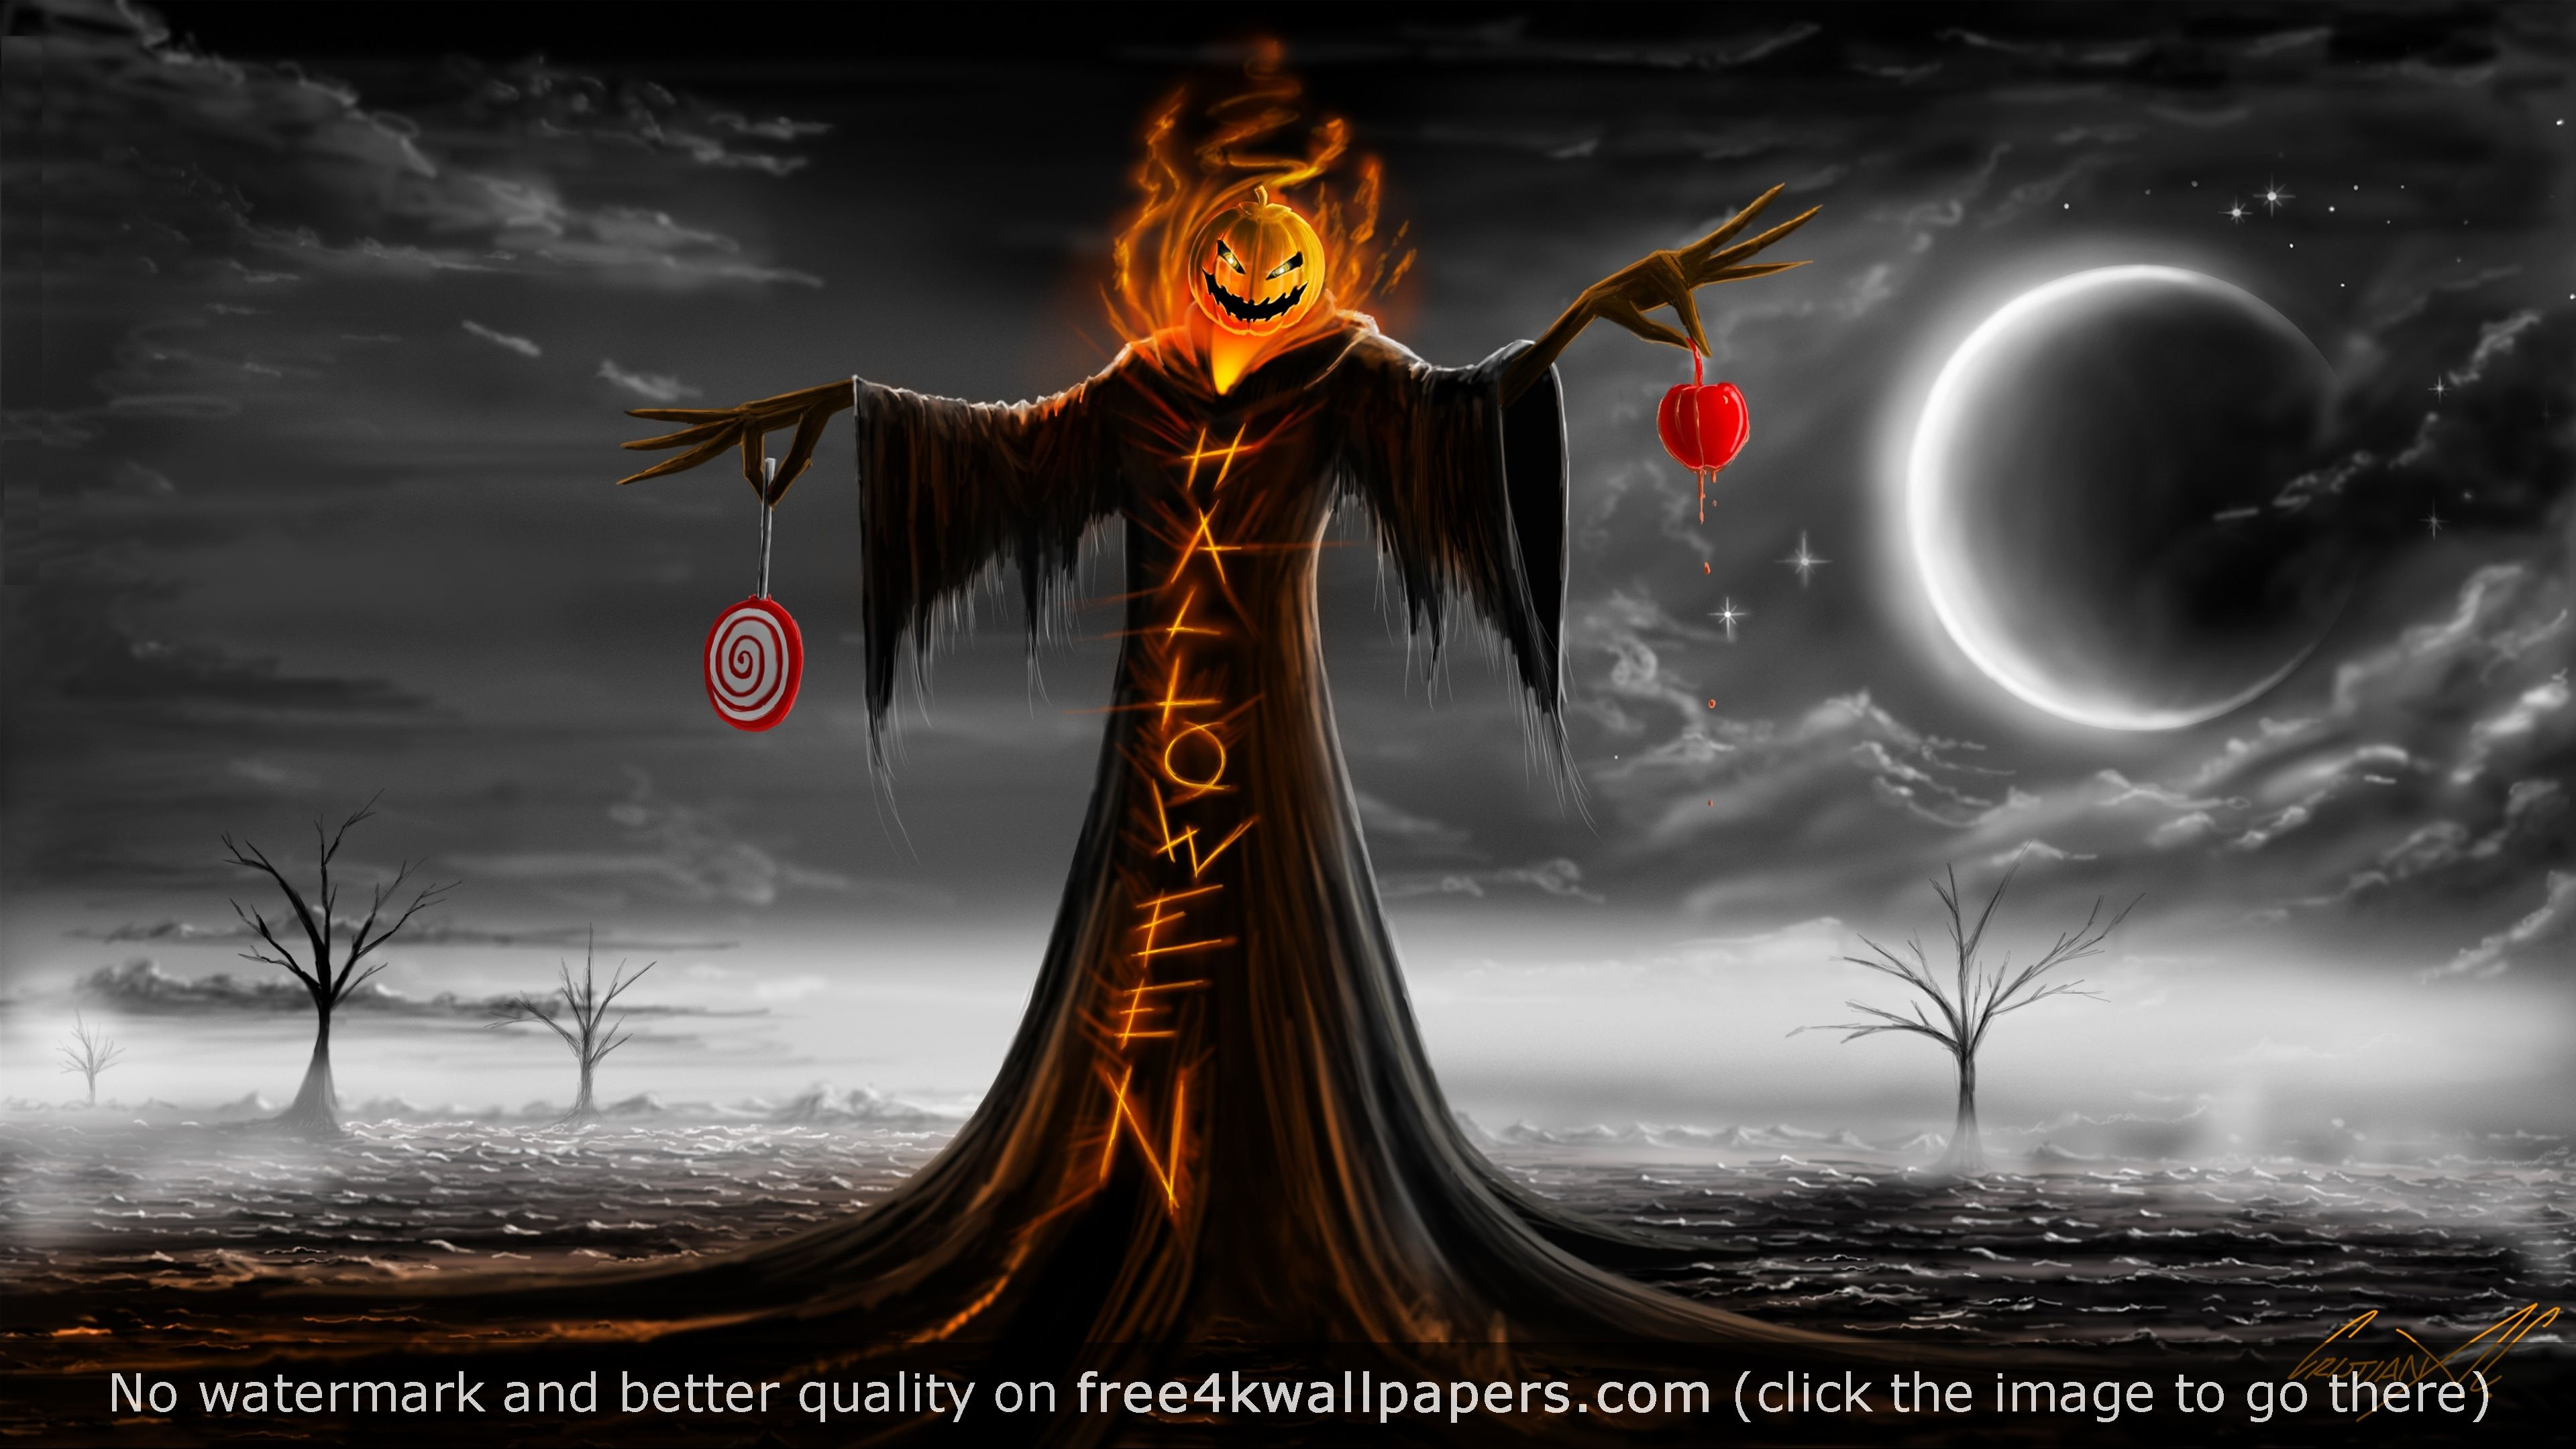 Halloween Pumpkin Hhost wallpaper Halloween images